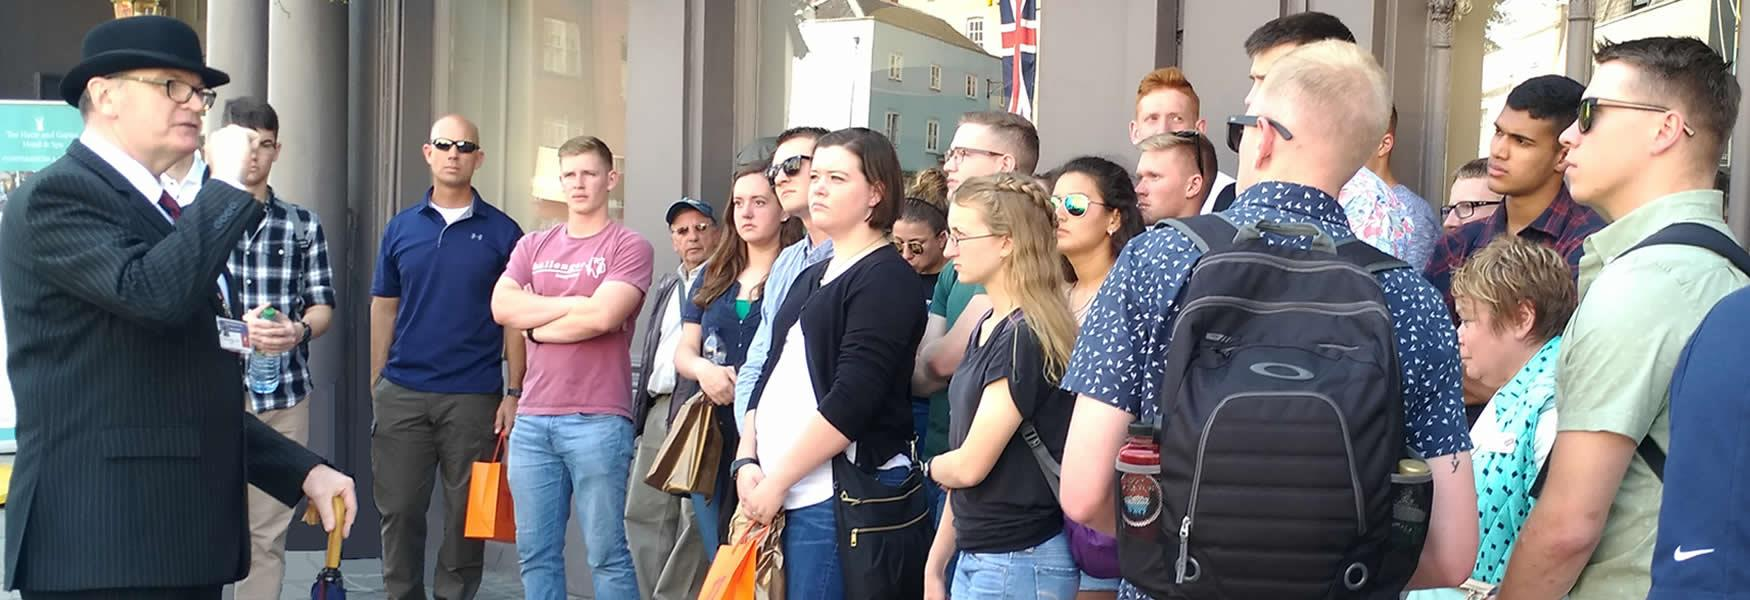 Royal Windsor Tours - Military History Walk